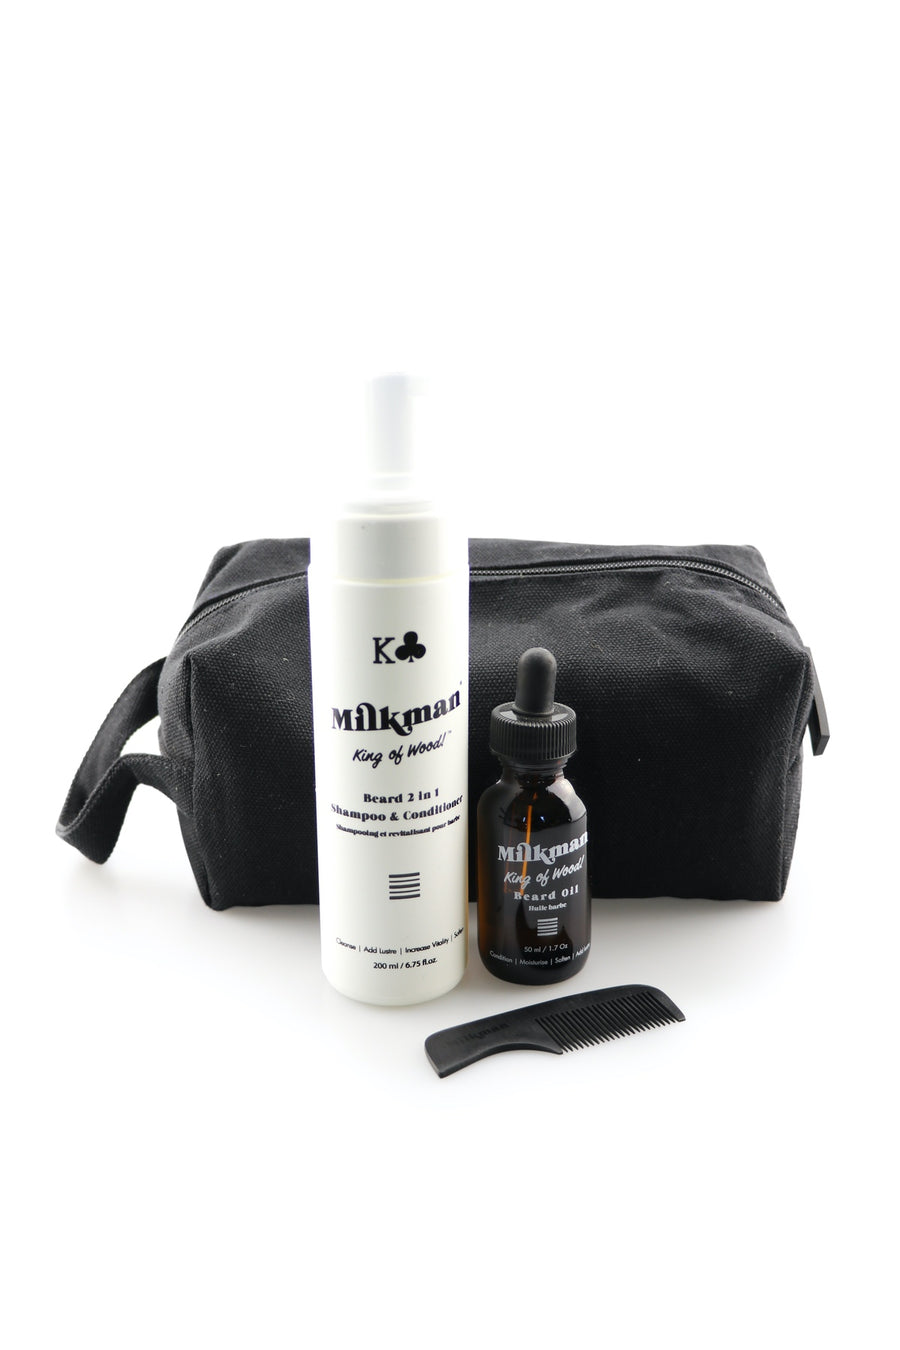 Milkman grooming essentials beard care kit